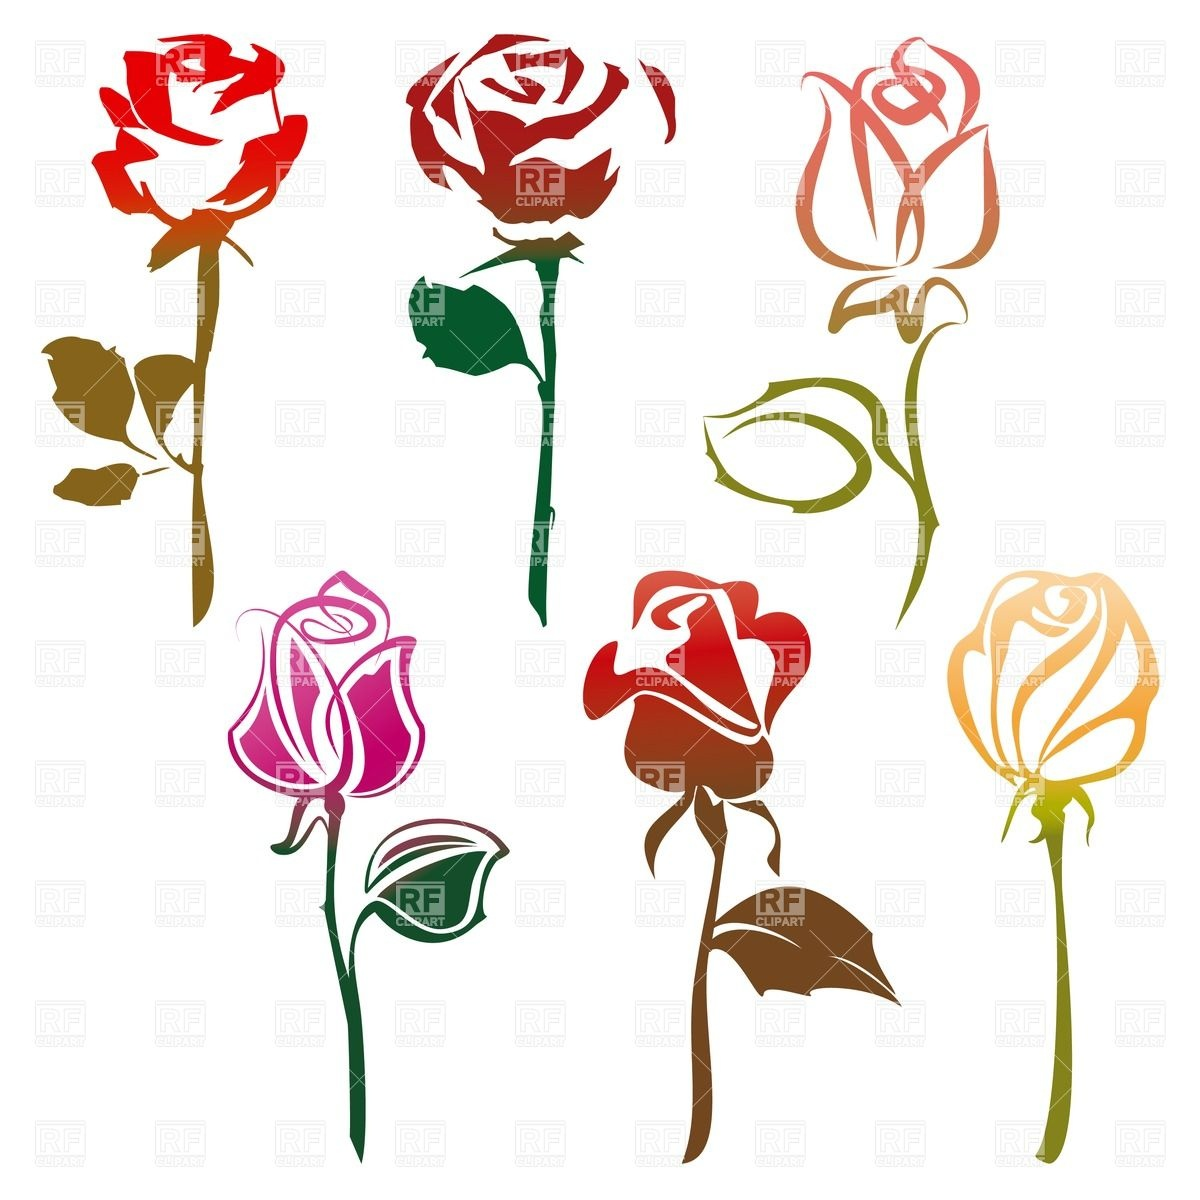 Rose Tattoo Stock Images RoyaltyFree Images amp Vectors